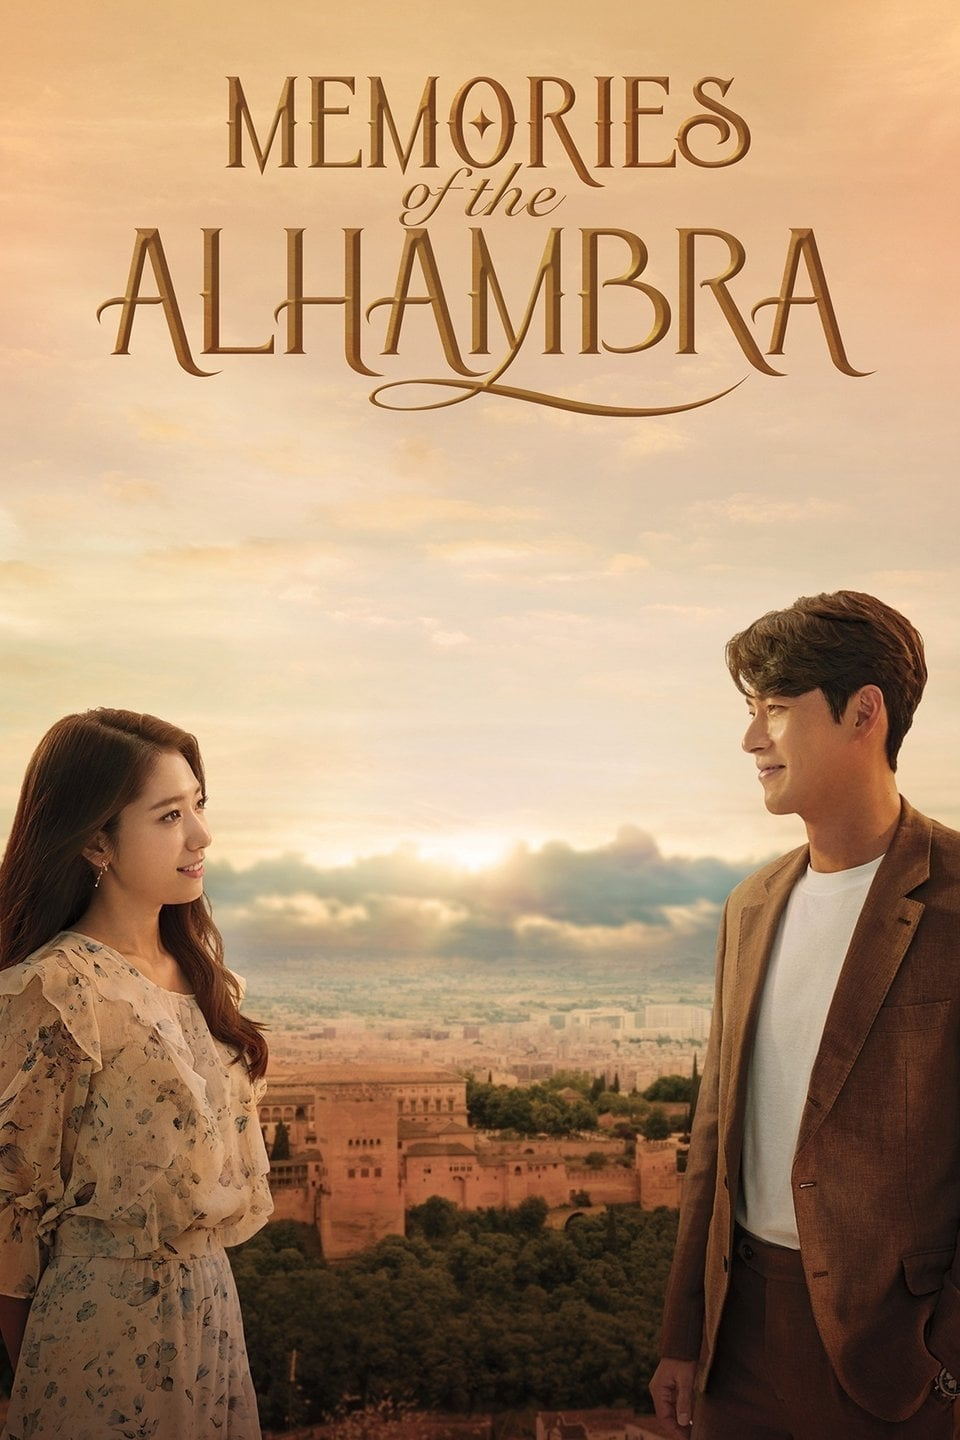 Memories Of The Alhambra Streaming : memories, alhambra, streaming, Watch, Memories, Alhambra, Online:, Netflix,, Amazon, Prime,, Hulu,, Release, Dates, Streaming